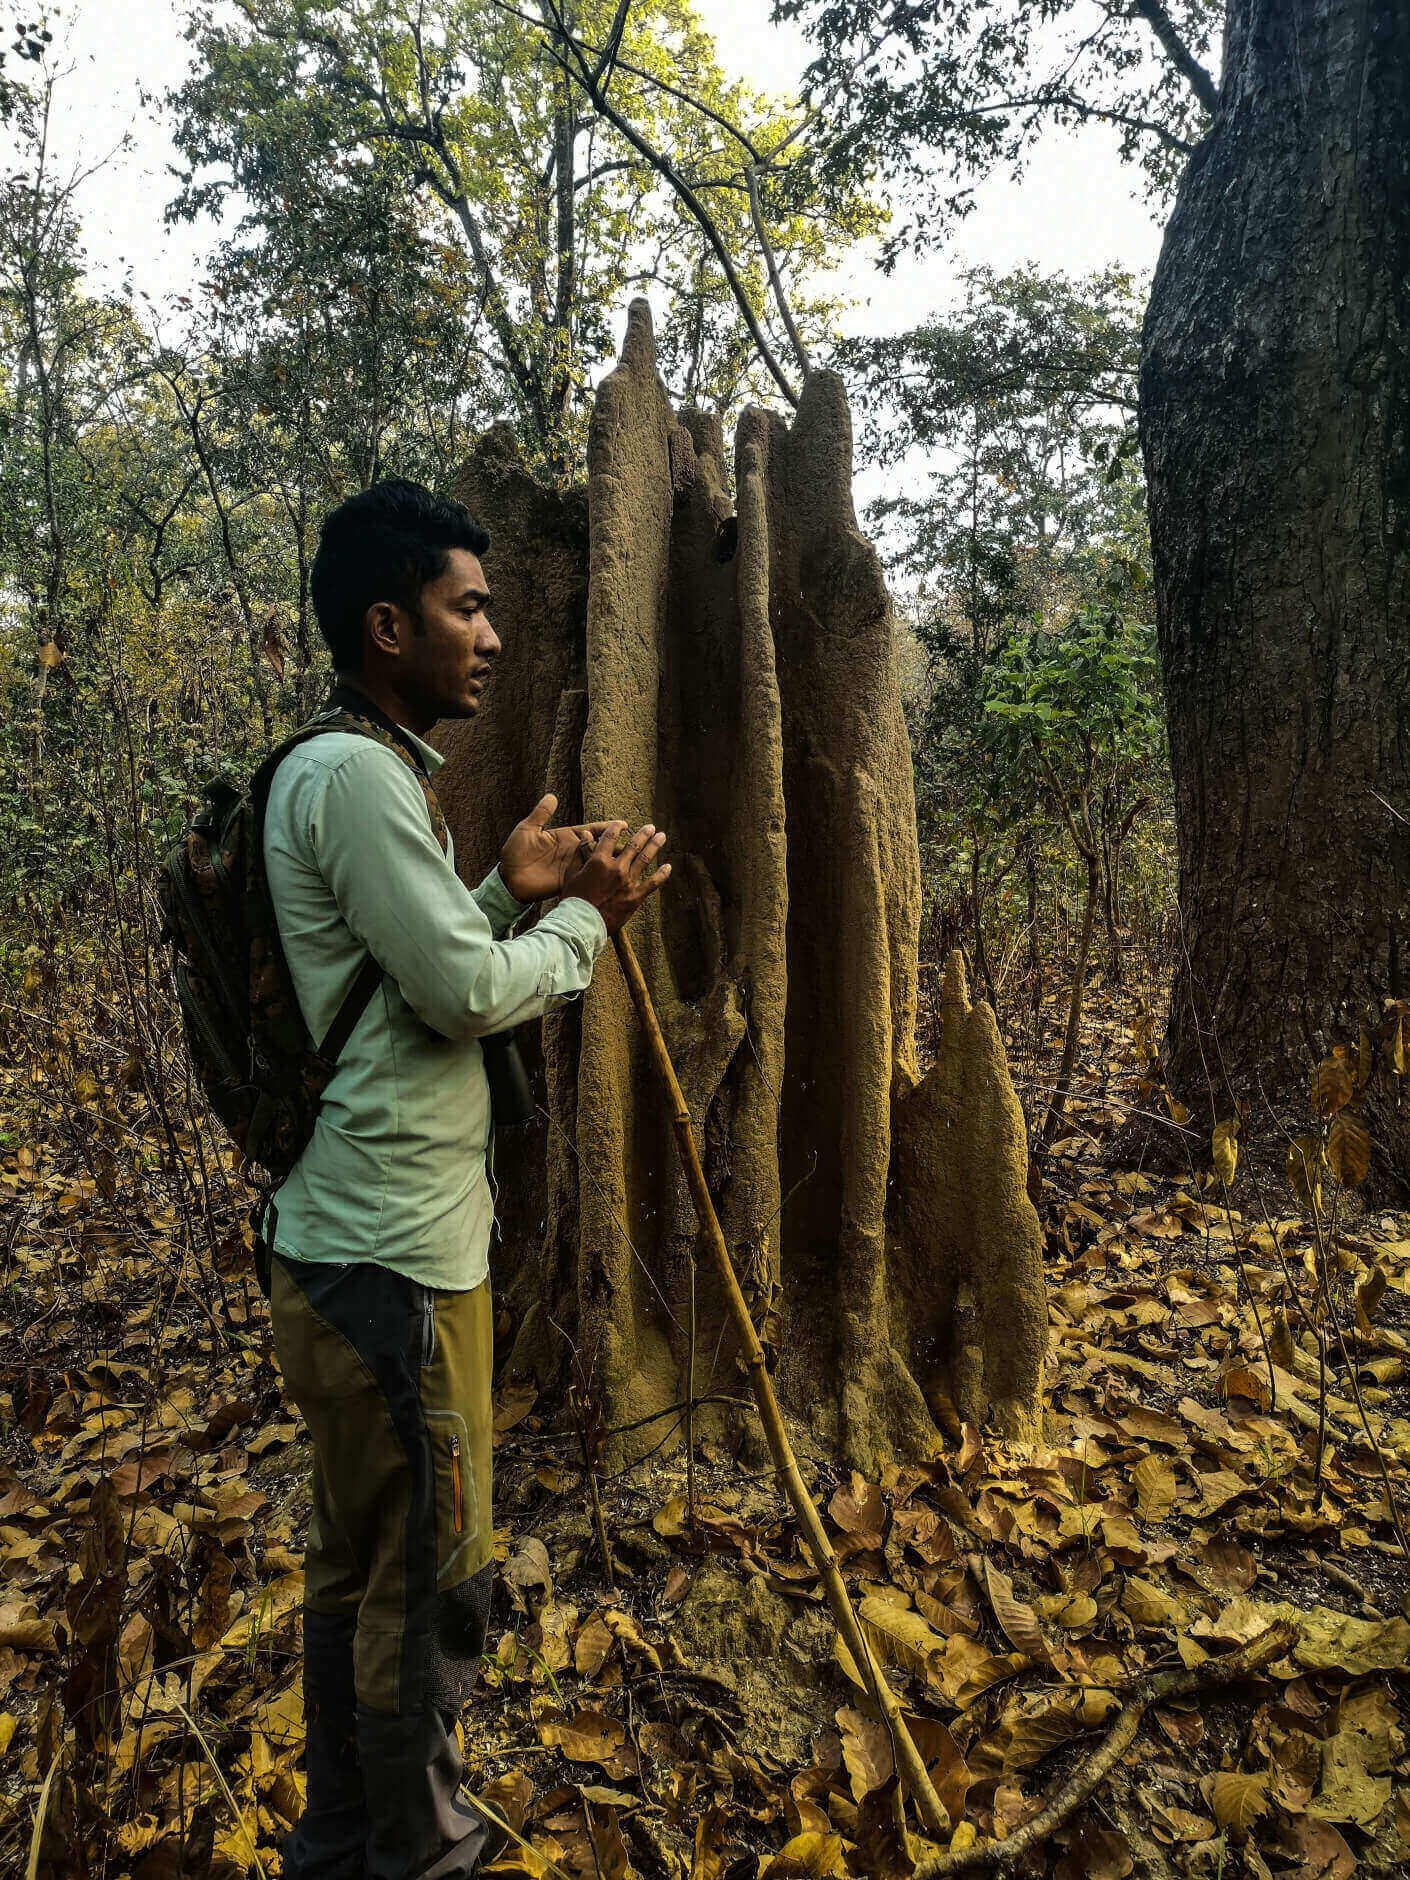 Local guide next to termite house